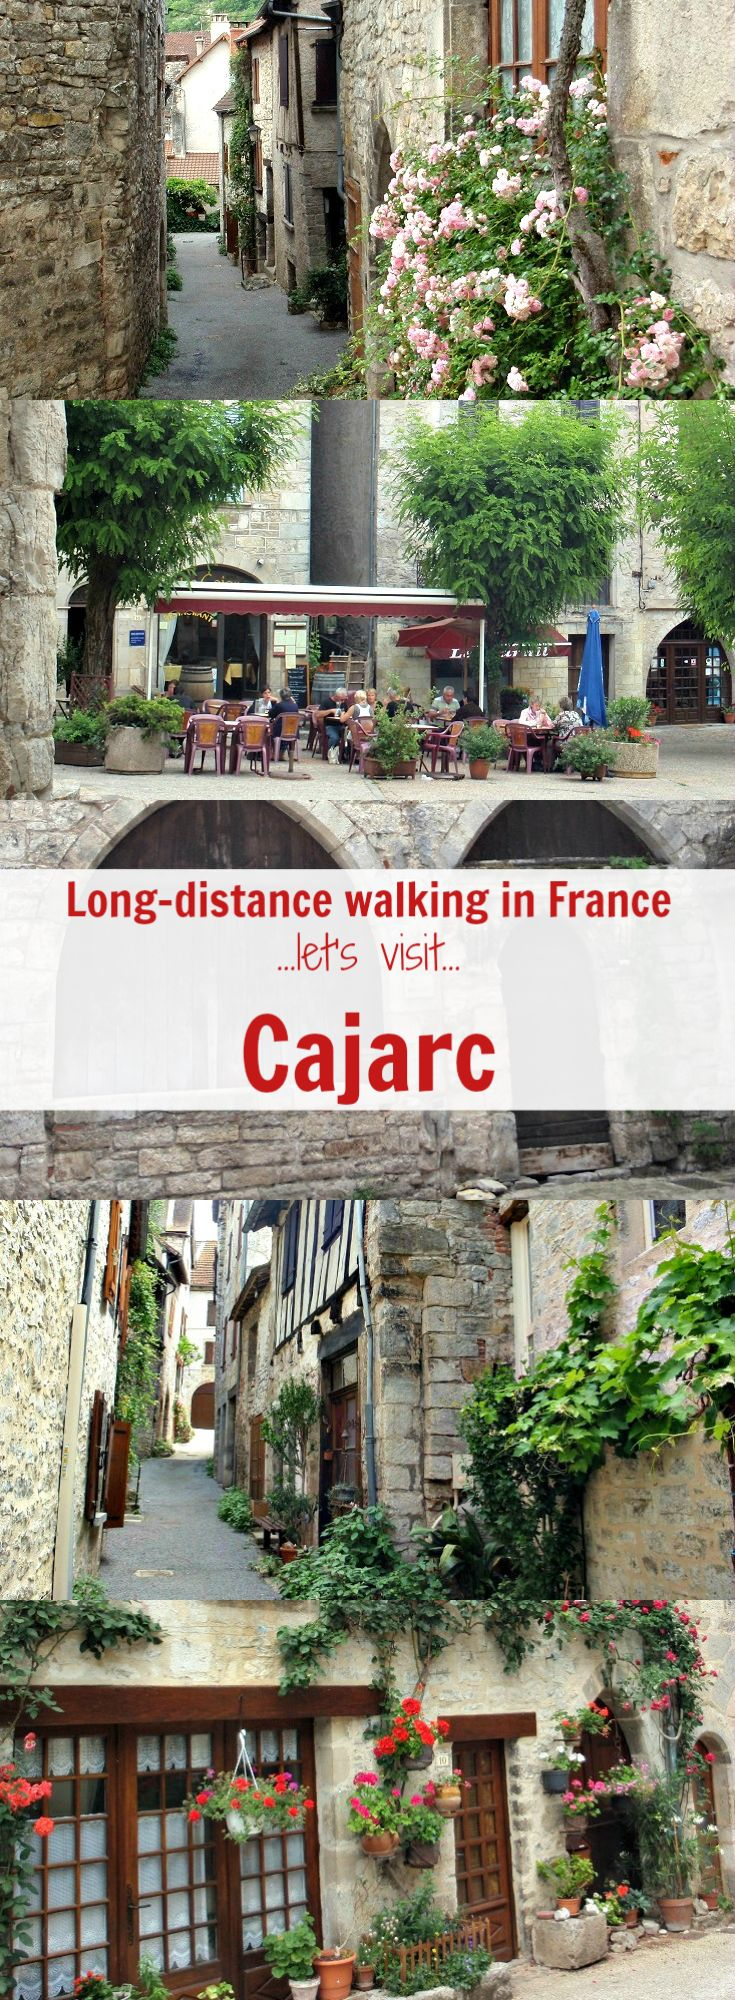 Accommodation listings and favourite photos from Cajarc, France